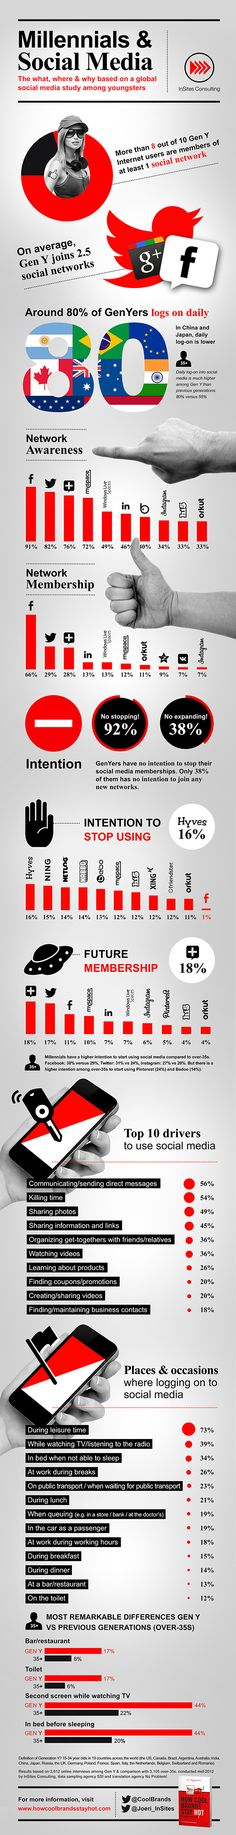 How and when does Gen Y use social media? Infographic.